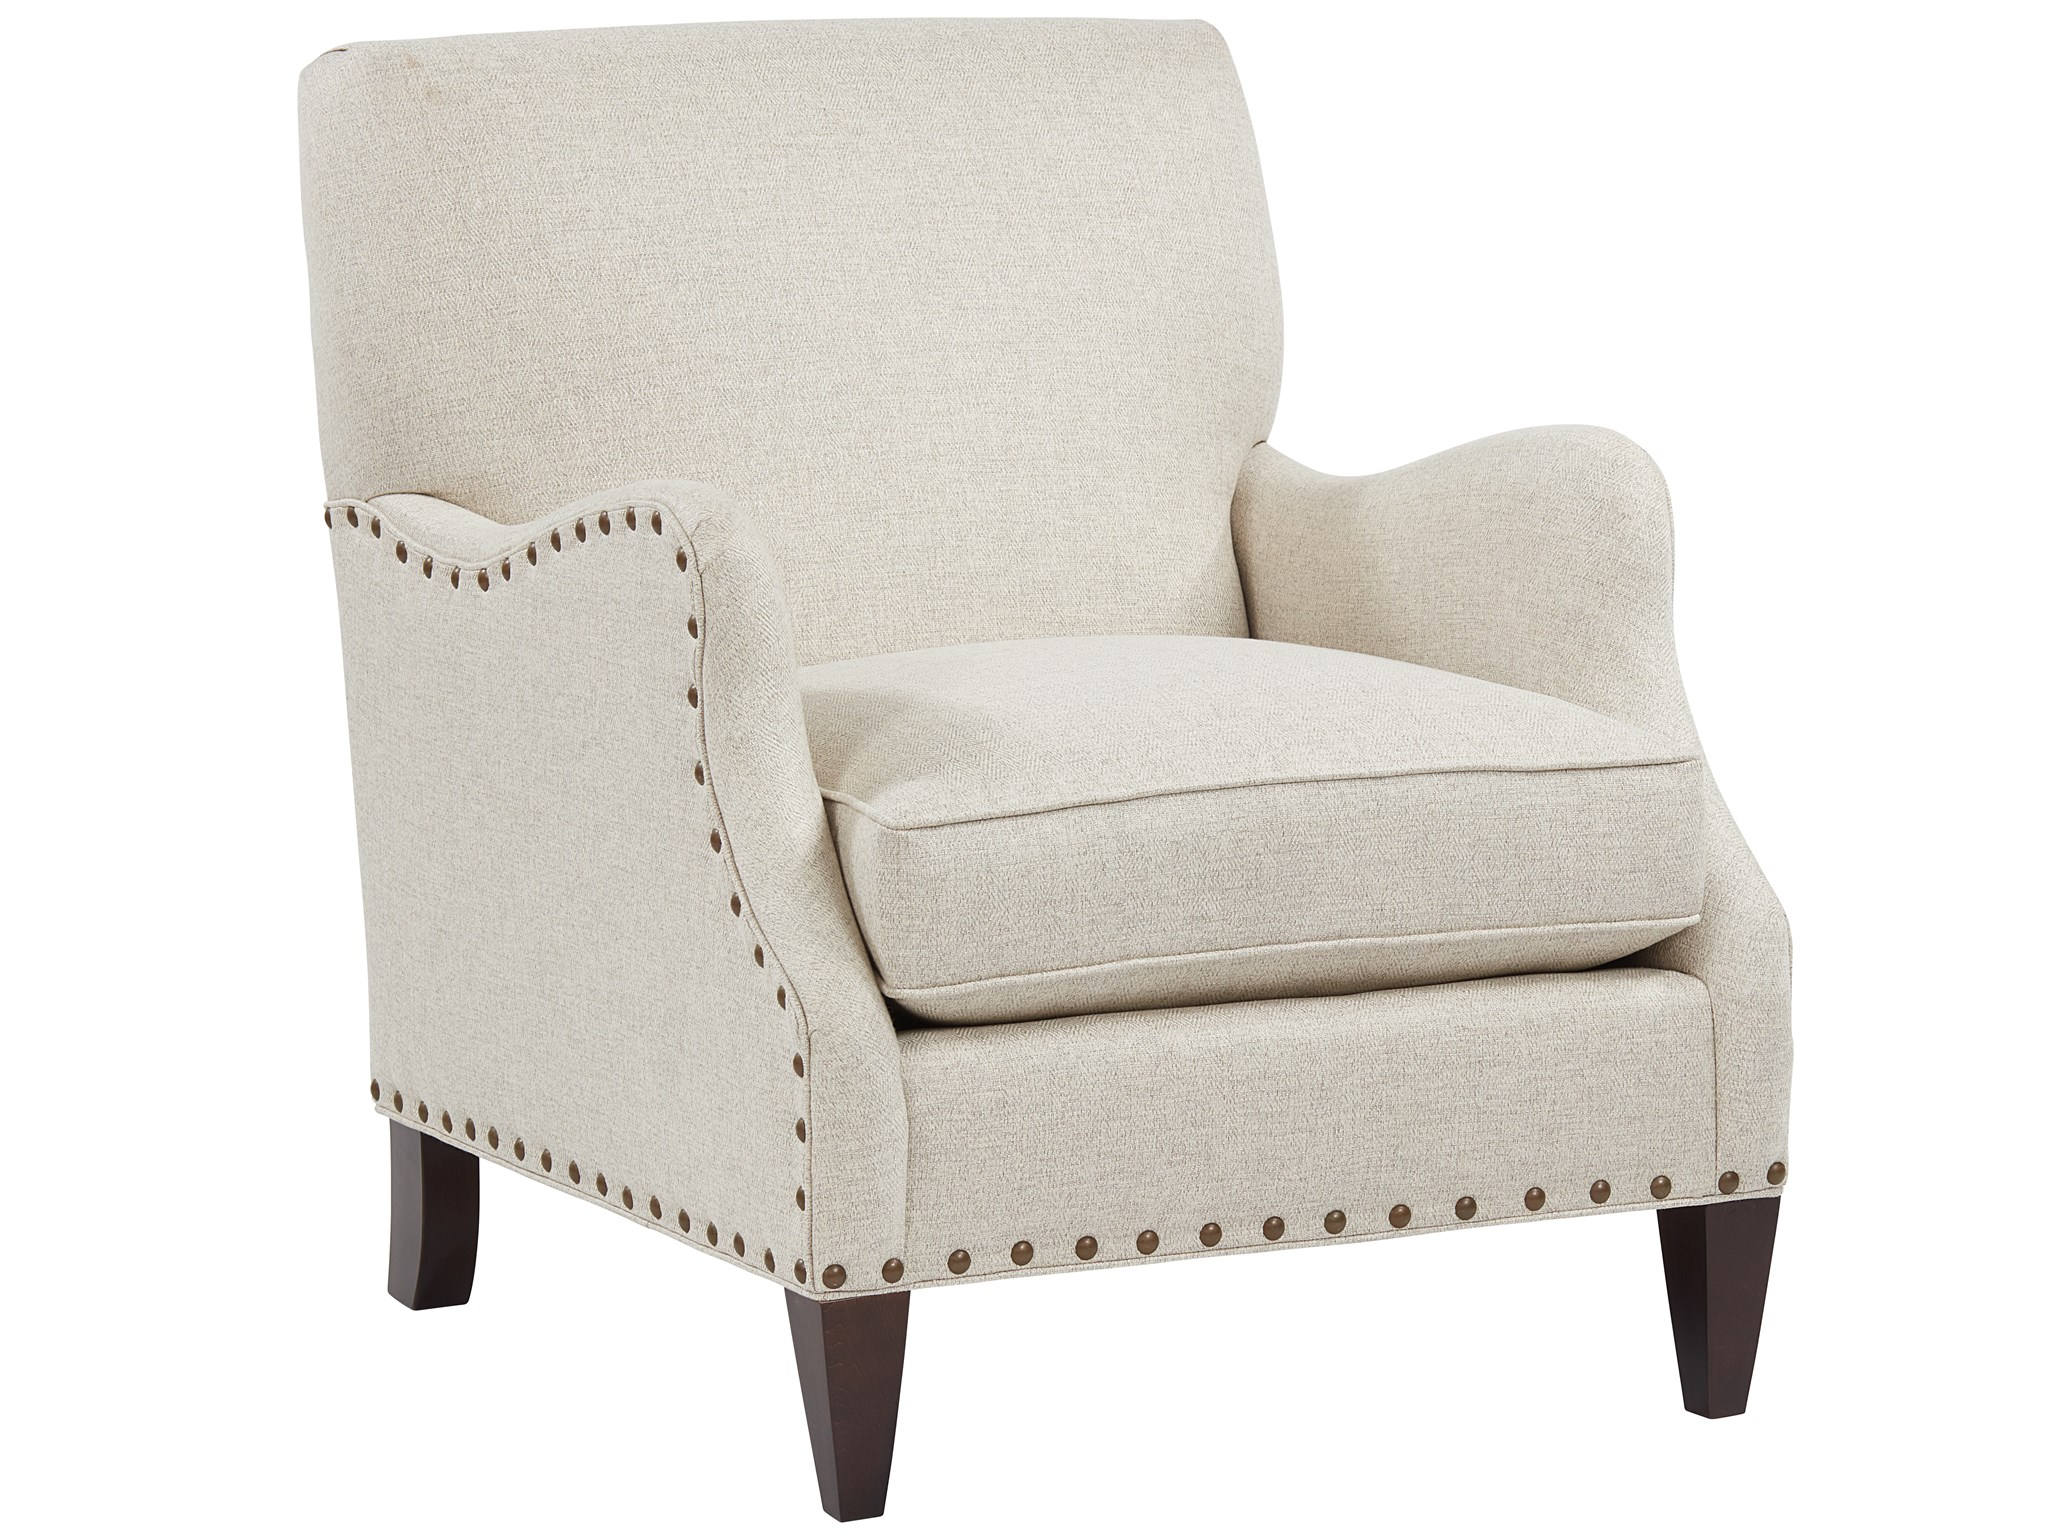 Darcy Chair - Special Order